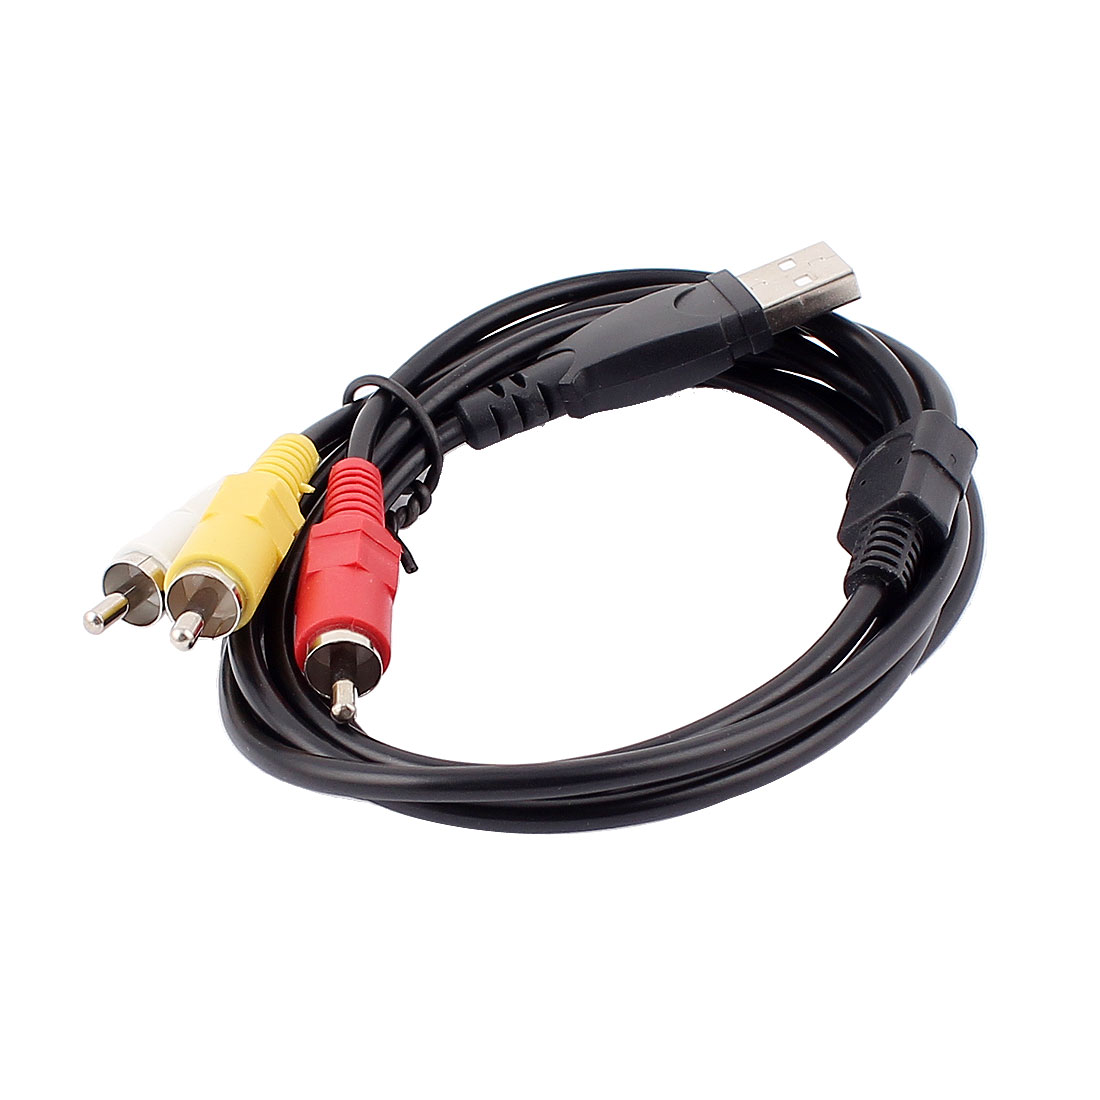 USB to 3 RCA Male Adapter Camcorder AV Cable Black 5ft 1.53M